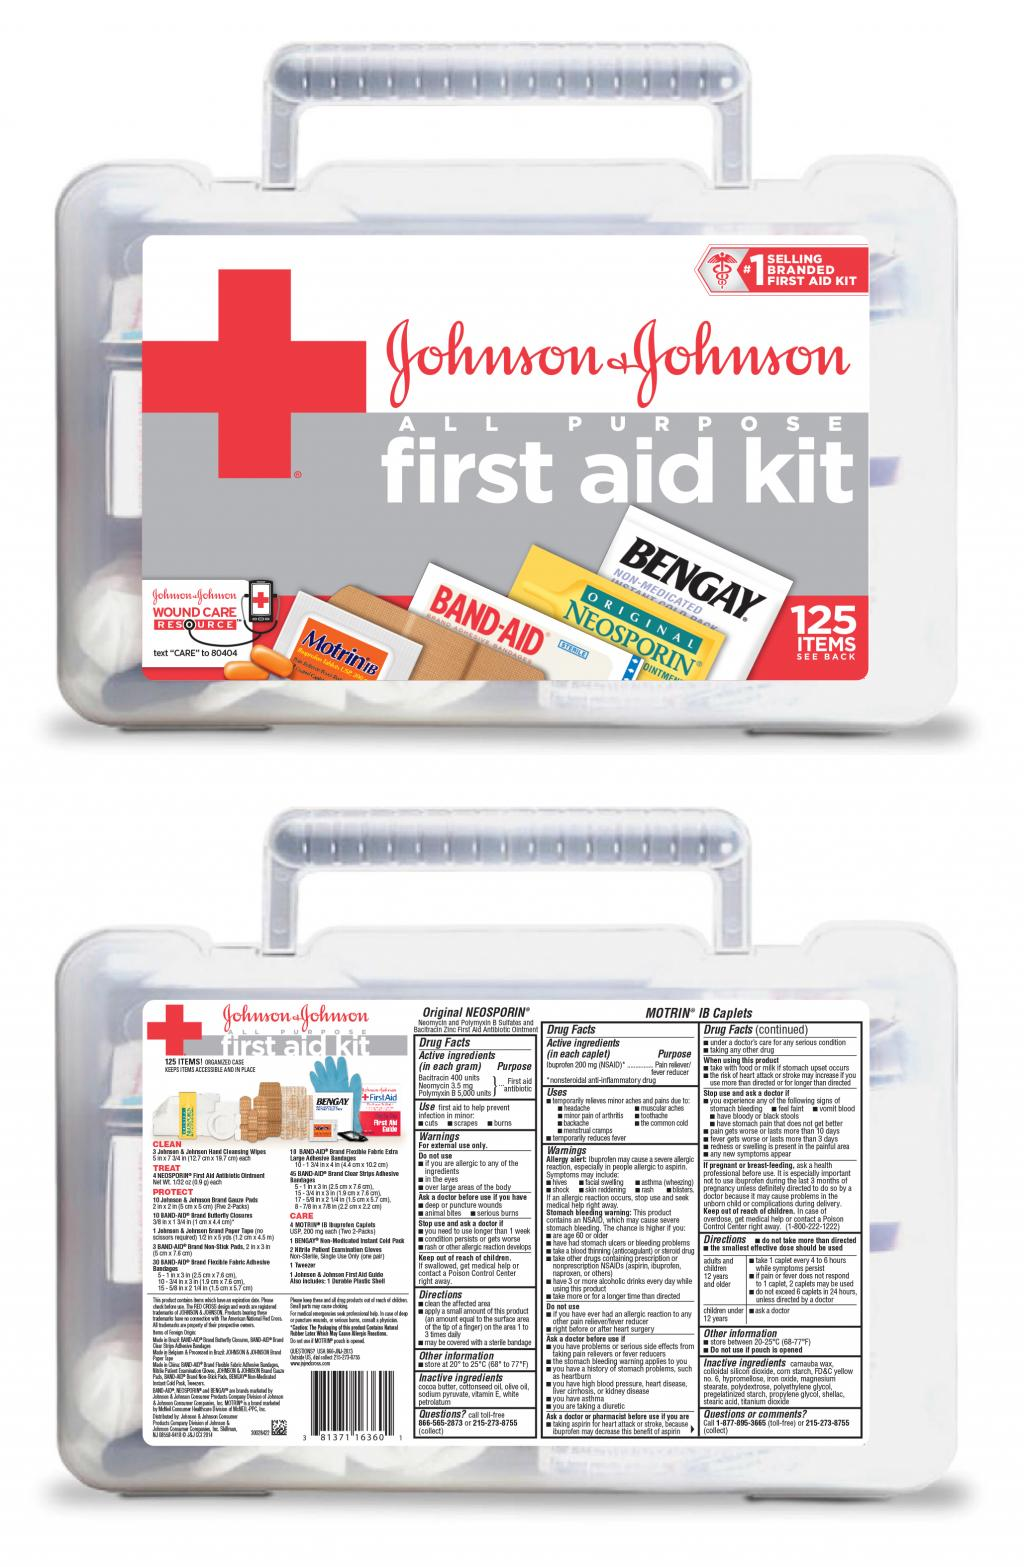 All-Purpose First Aid Kit Johnson & Johnson RED CROSS® Brand